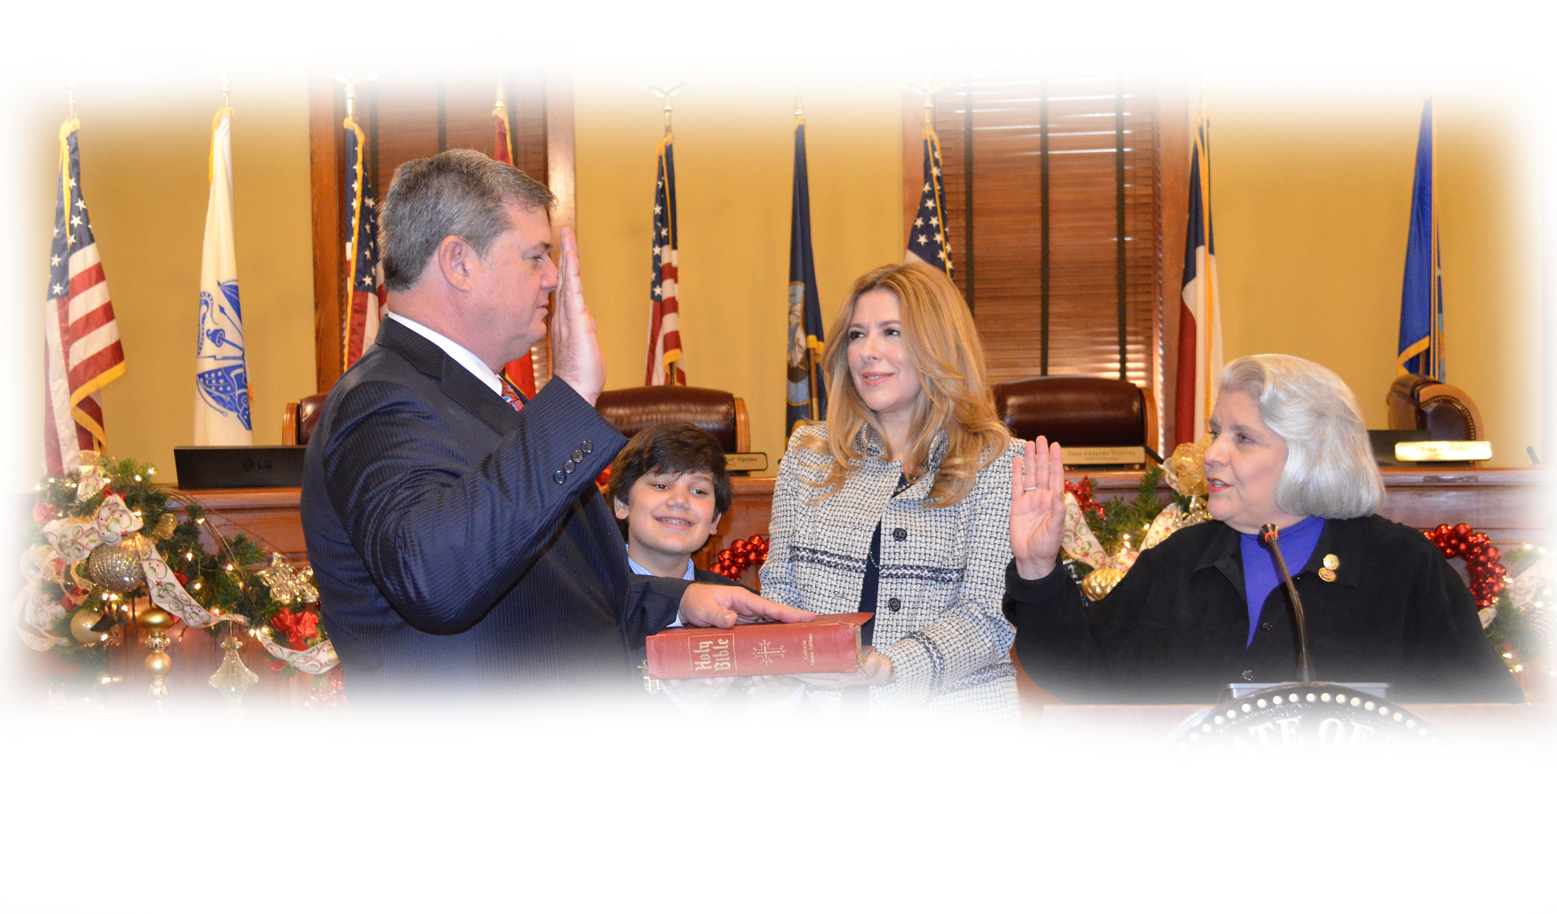 Commissioner John Galo being sworn in picture